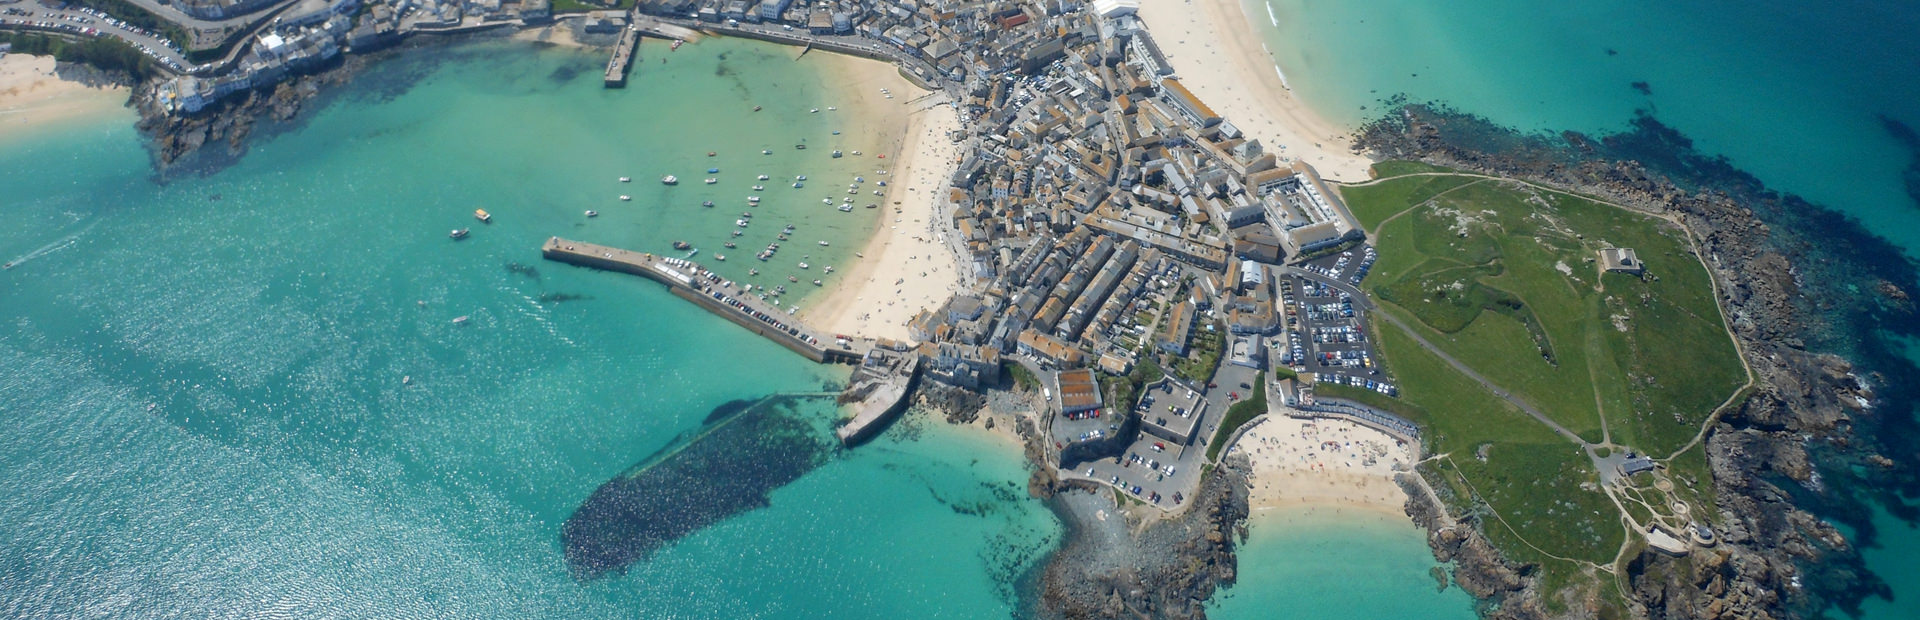 St Ives, Cornwall from a Trial Flight Experience